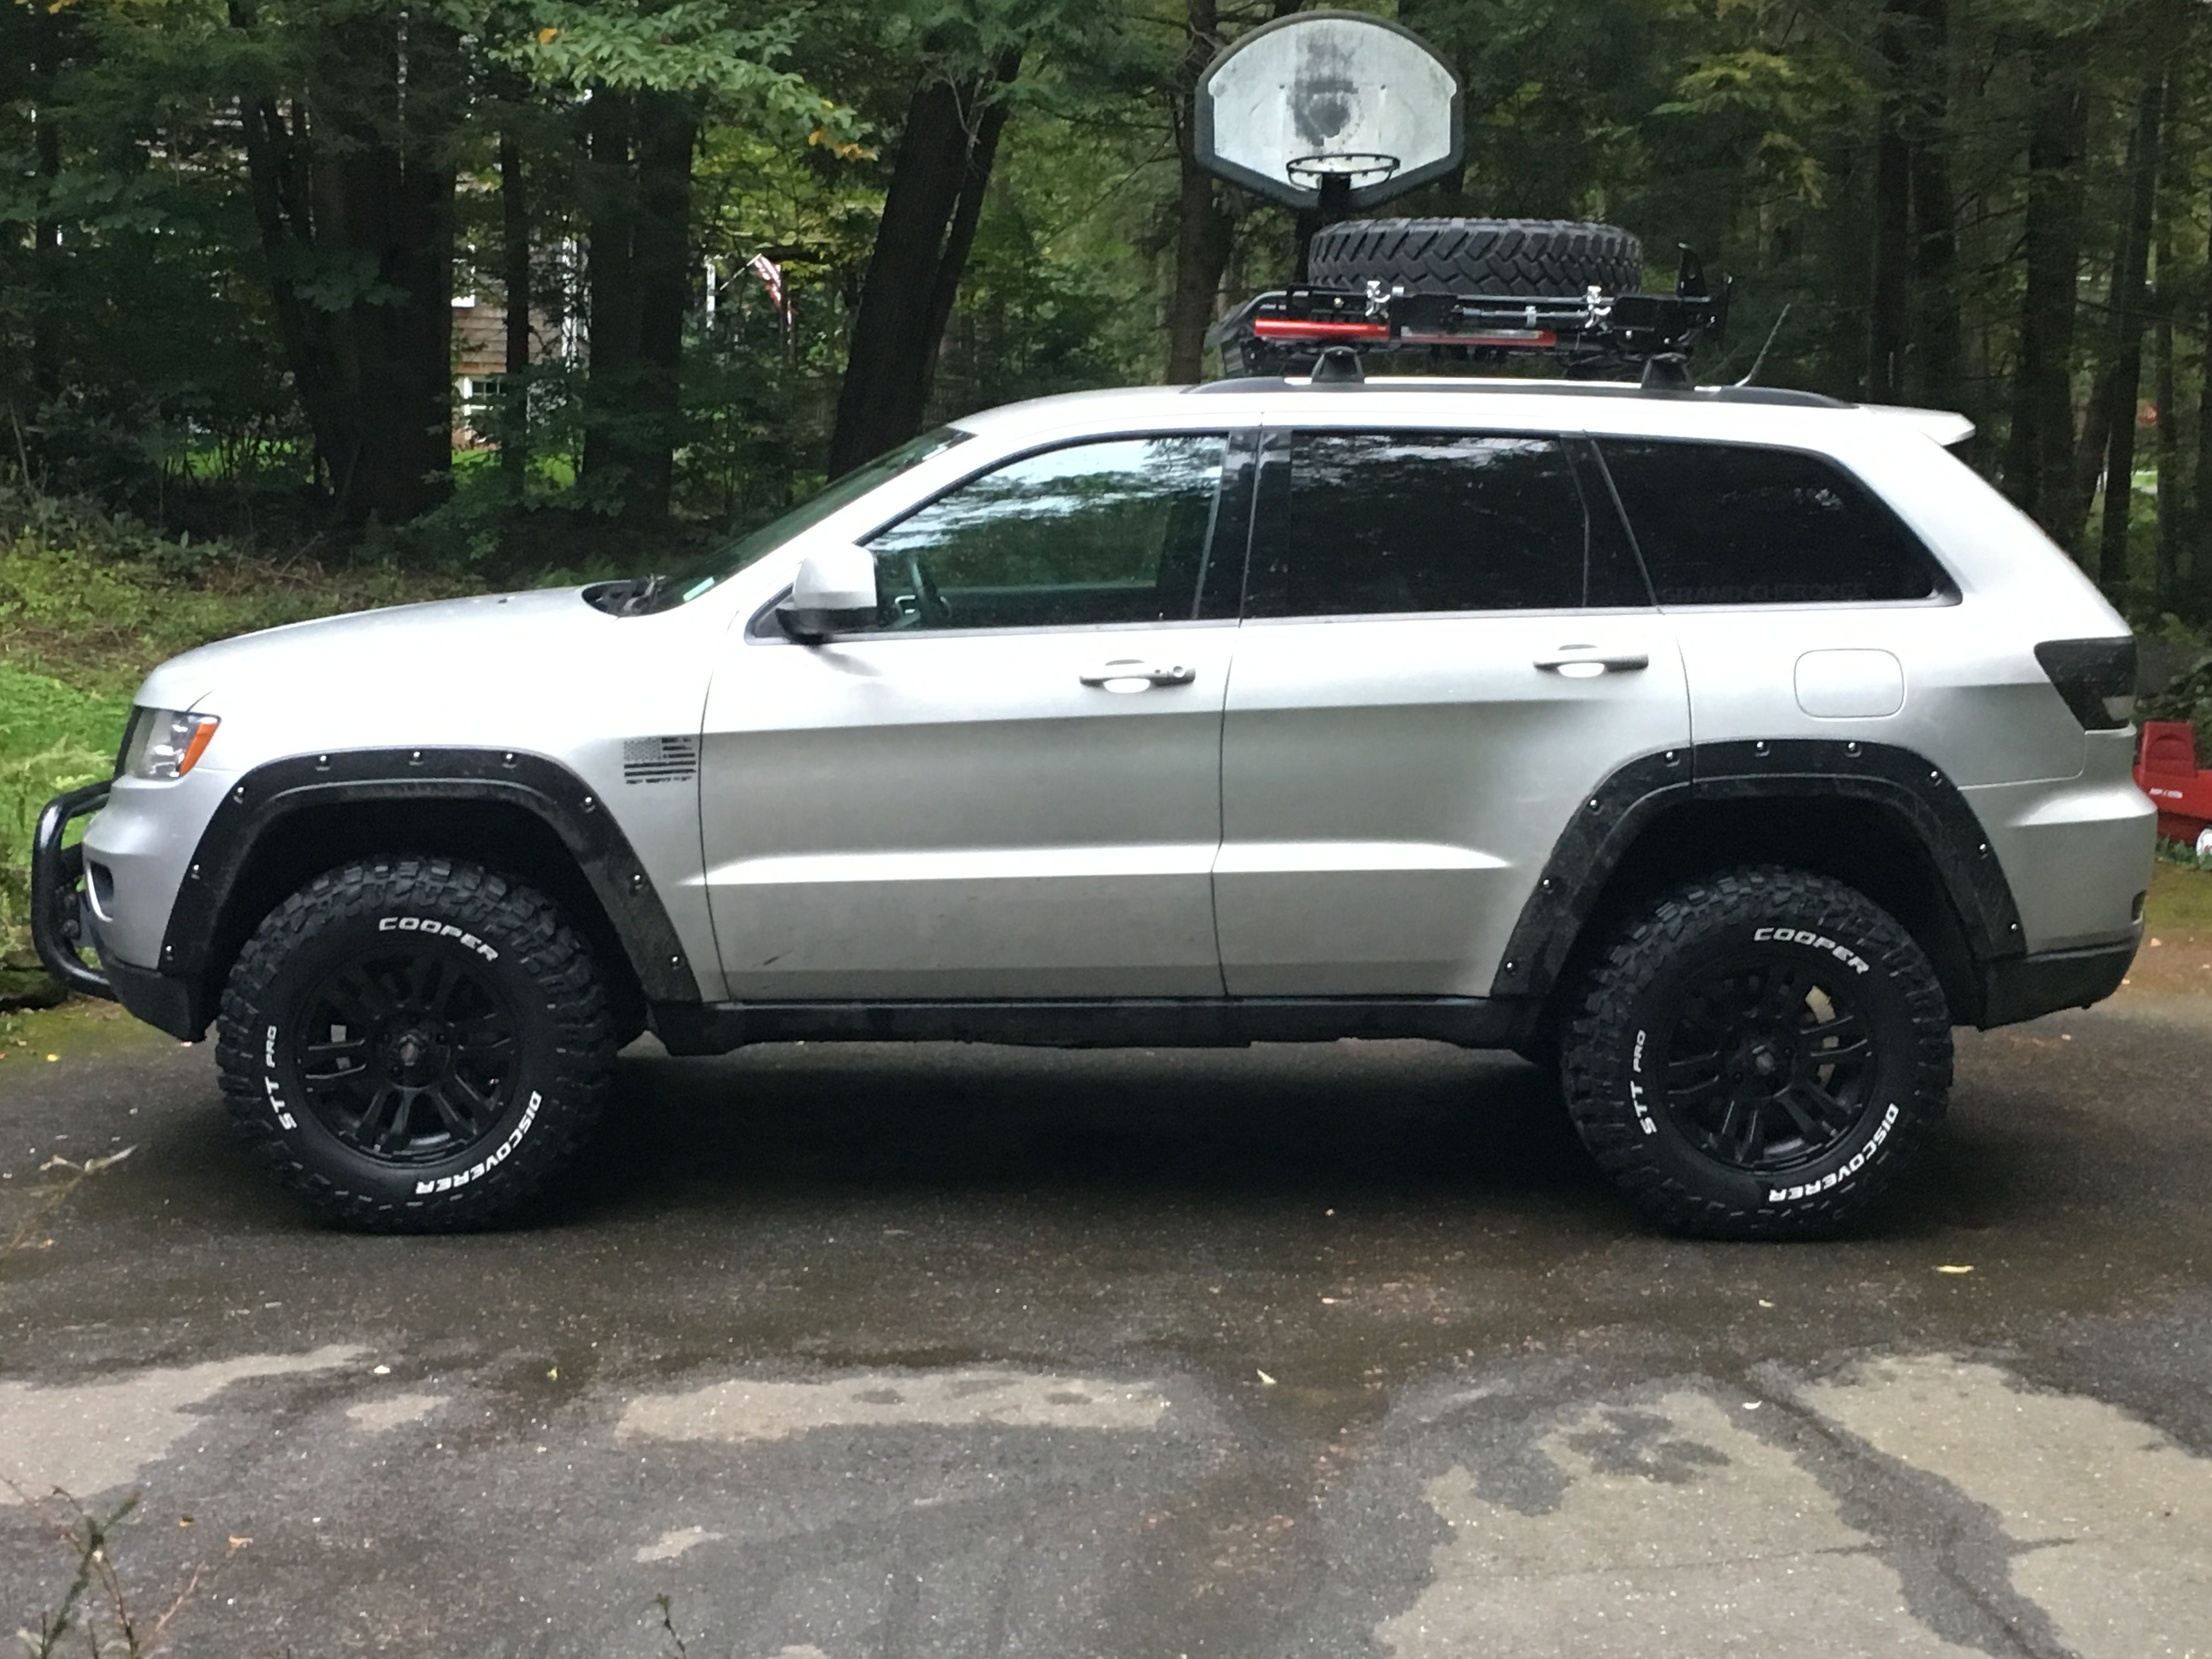 Lifted Jeep Srt8 >> 2013 grand Cherokee 2.5 lift 285/70/17 coopers | Grand cherokee | Pinterest | Cherokee, Jeeps ...